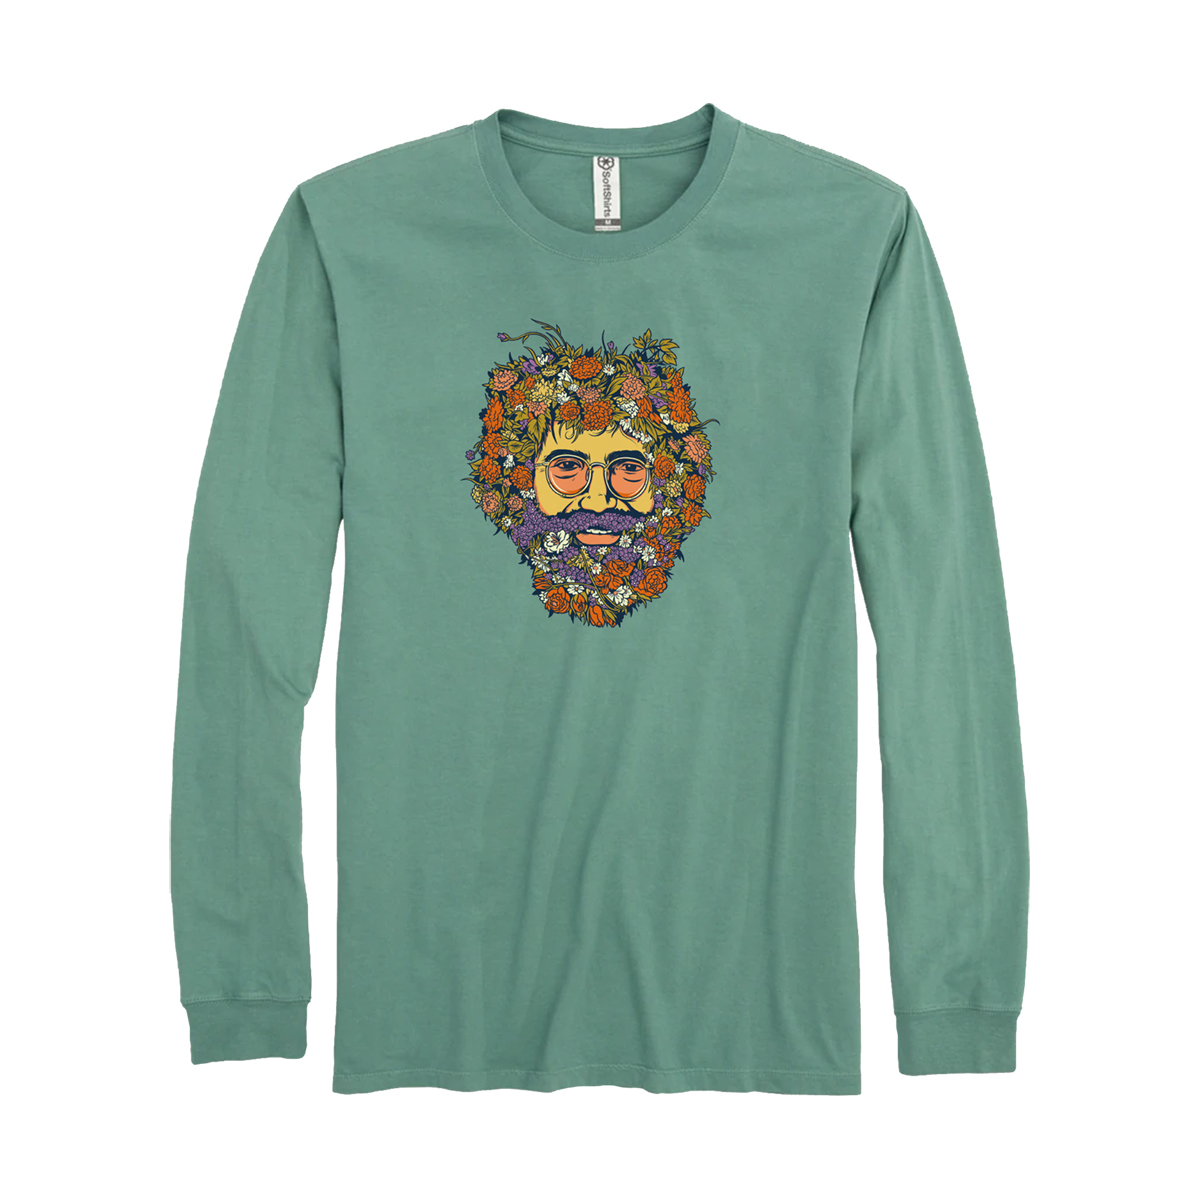 Jerry In Bloom Organic Cotton T-Shirt